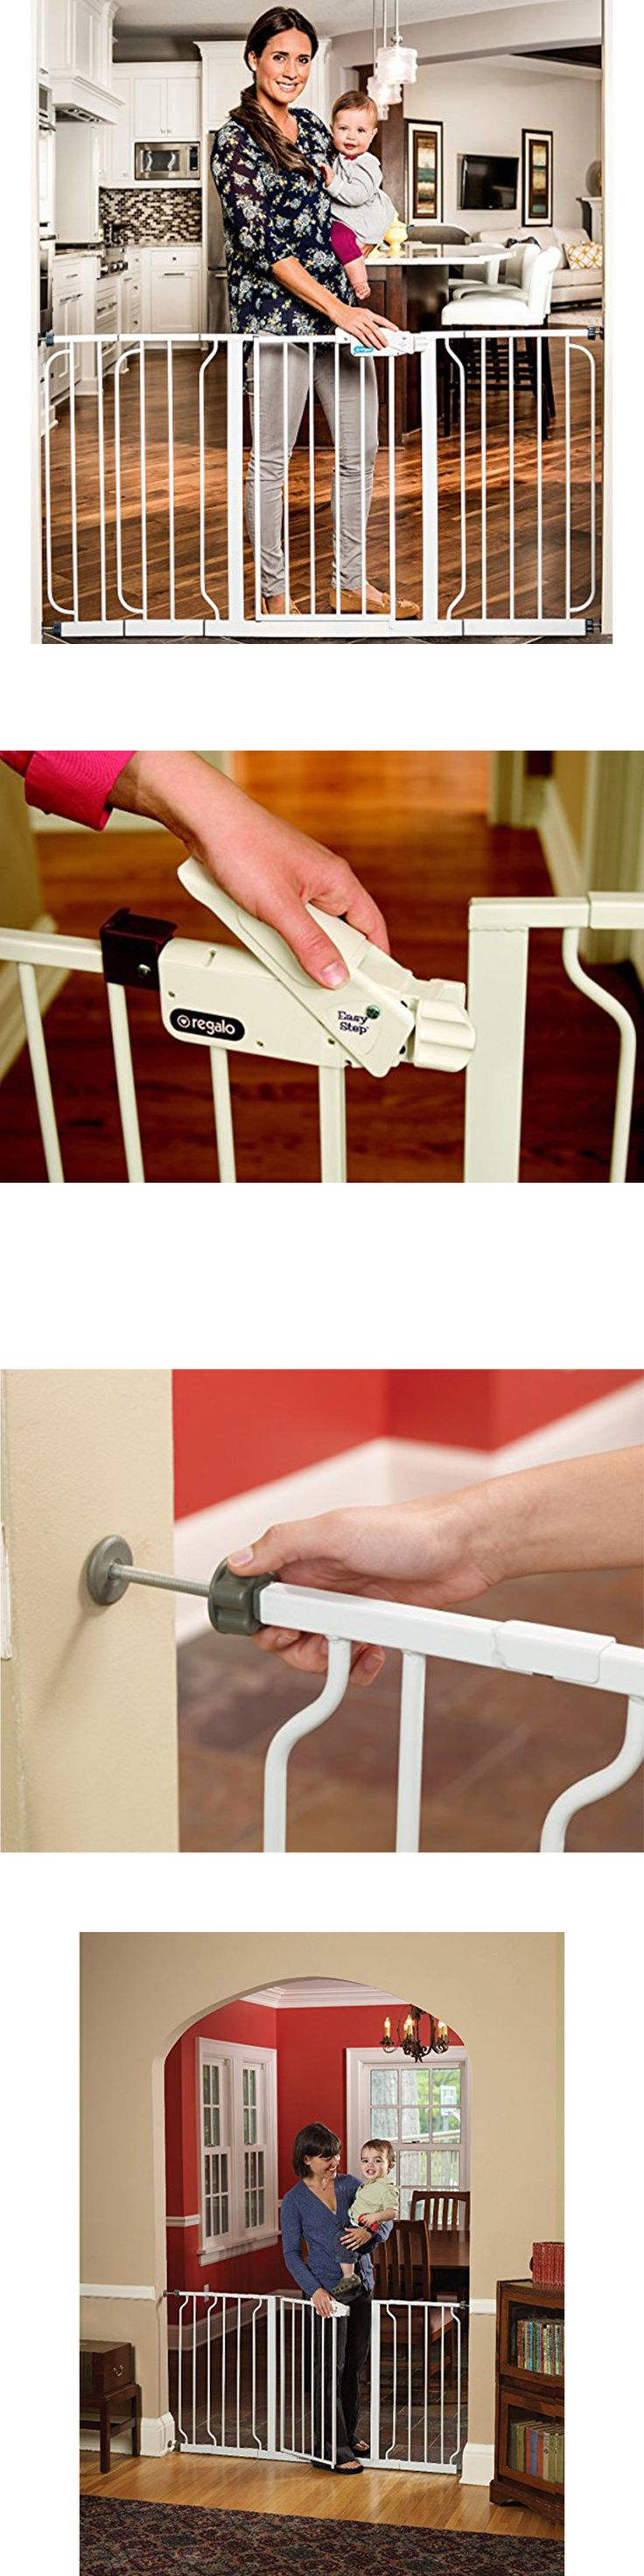 Baby Safety and Health 20433: Walk Through Safety Gate Extra Wide Baby Child Pet Dog Cat Easy Close Door White -> BUY IT NOW ONLY: $50.98 on eBay!